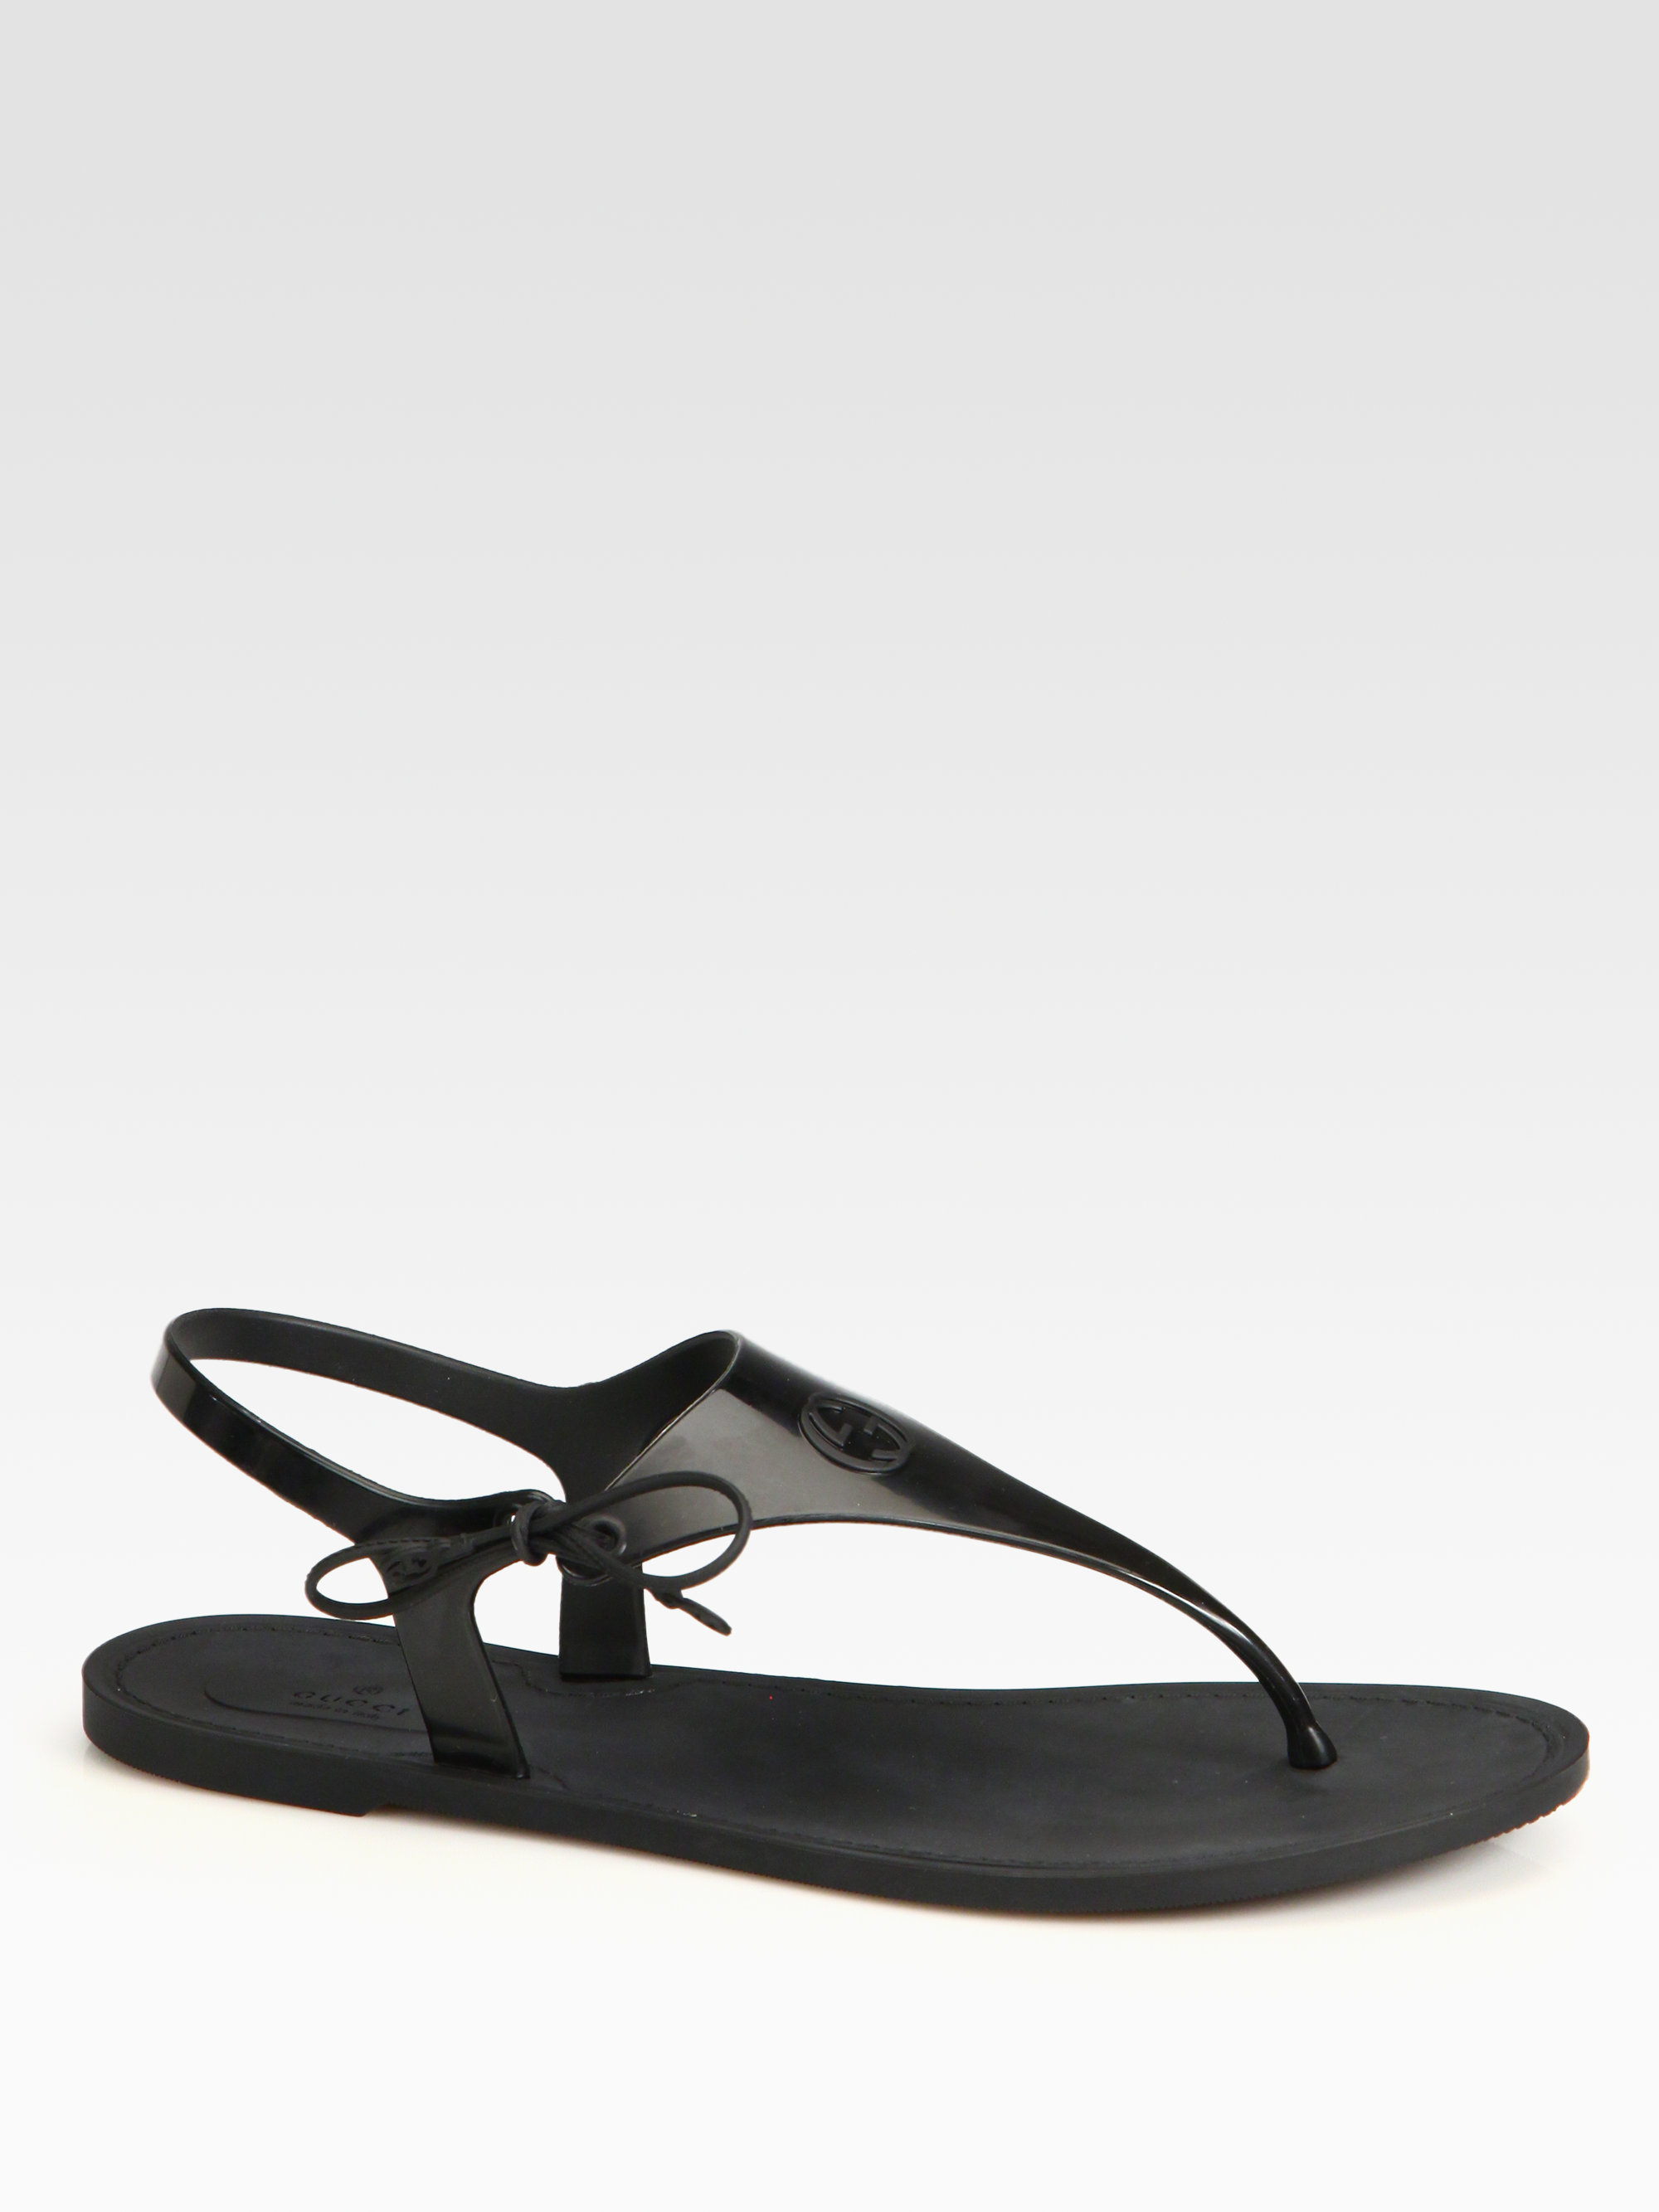 Lyst - Gucci Katina Rubber Thong Sandals in Black a89c5128f270